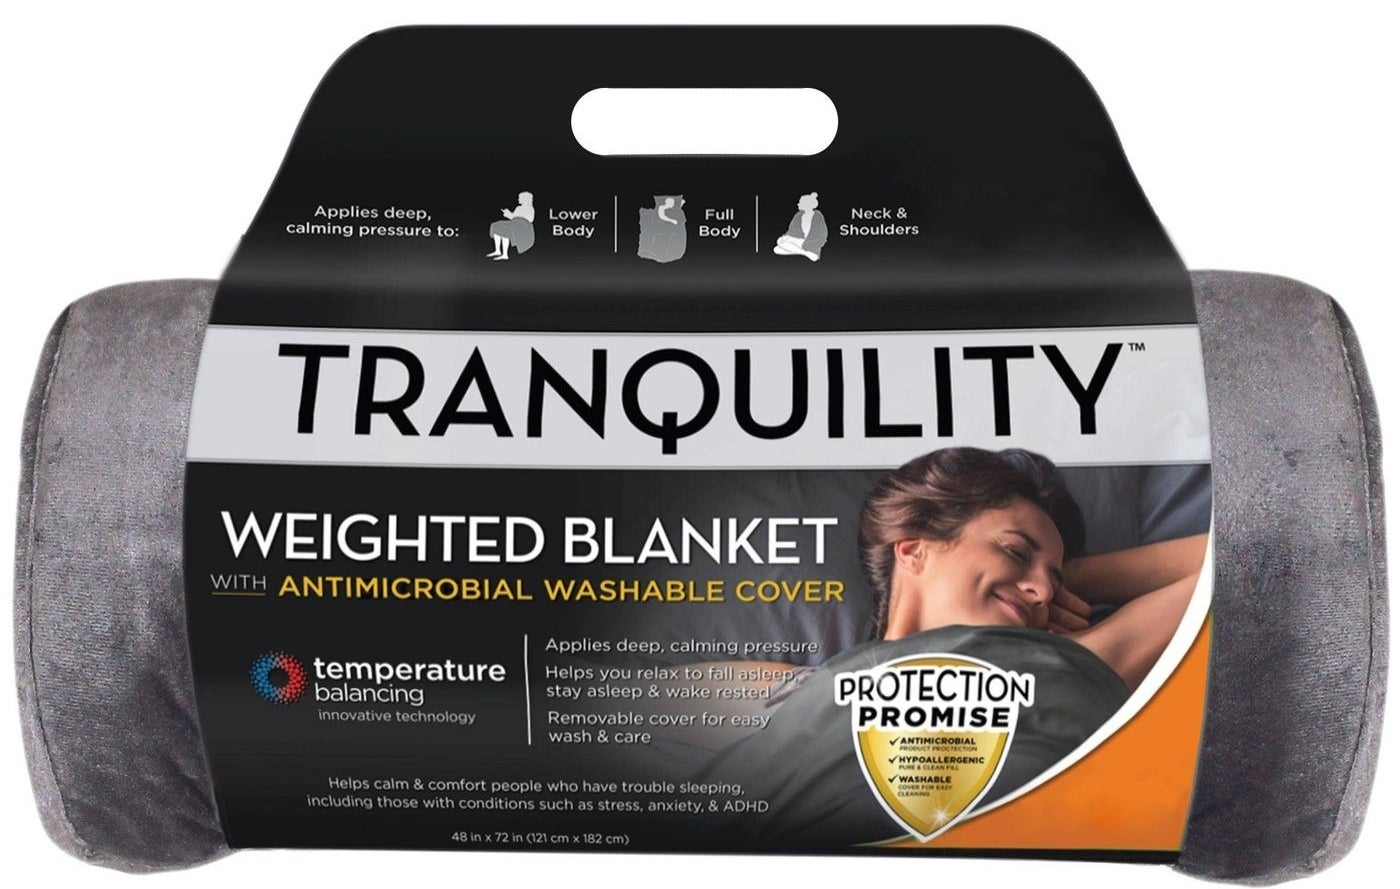 The blanket, which is gray